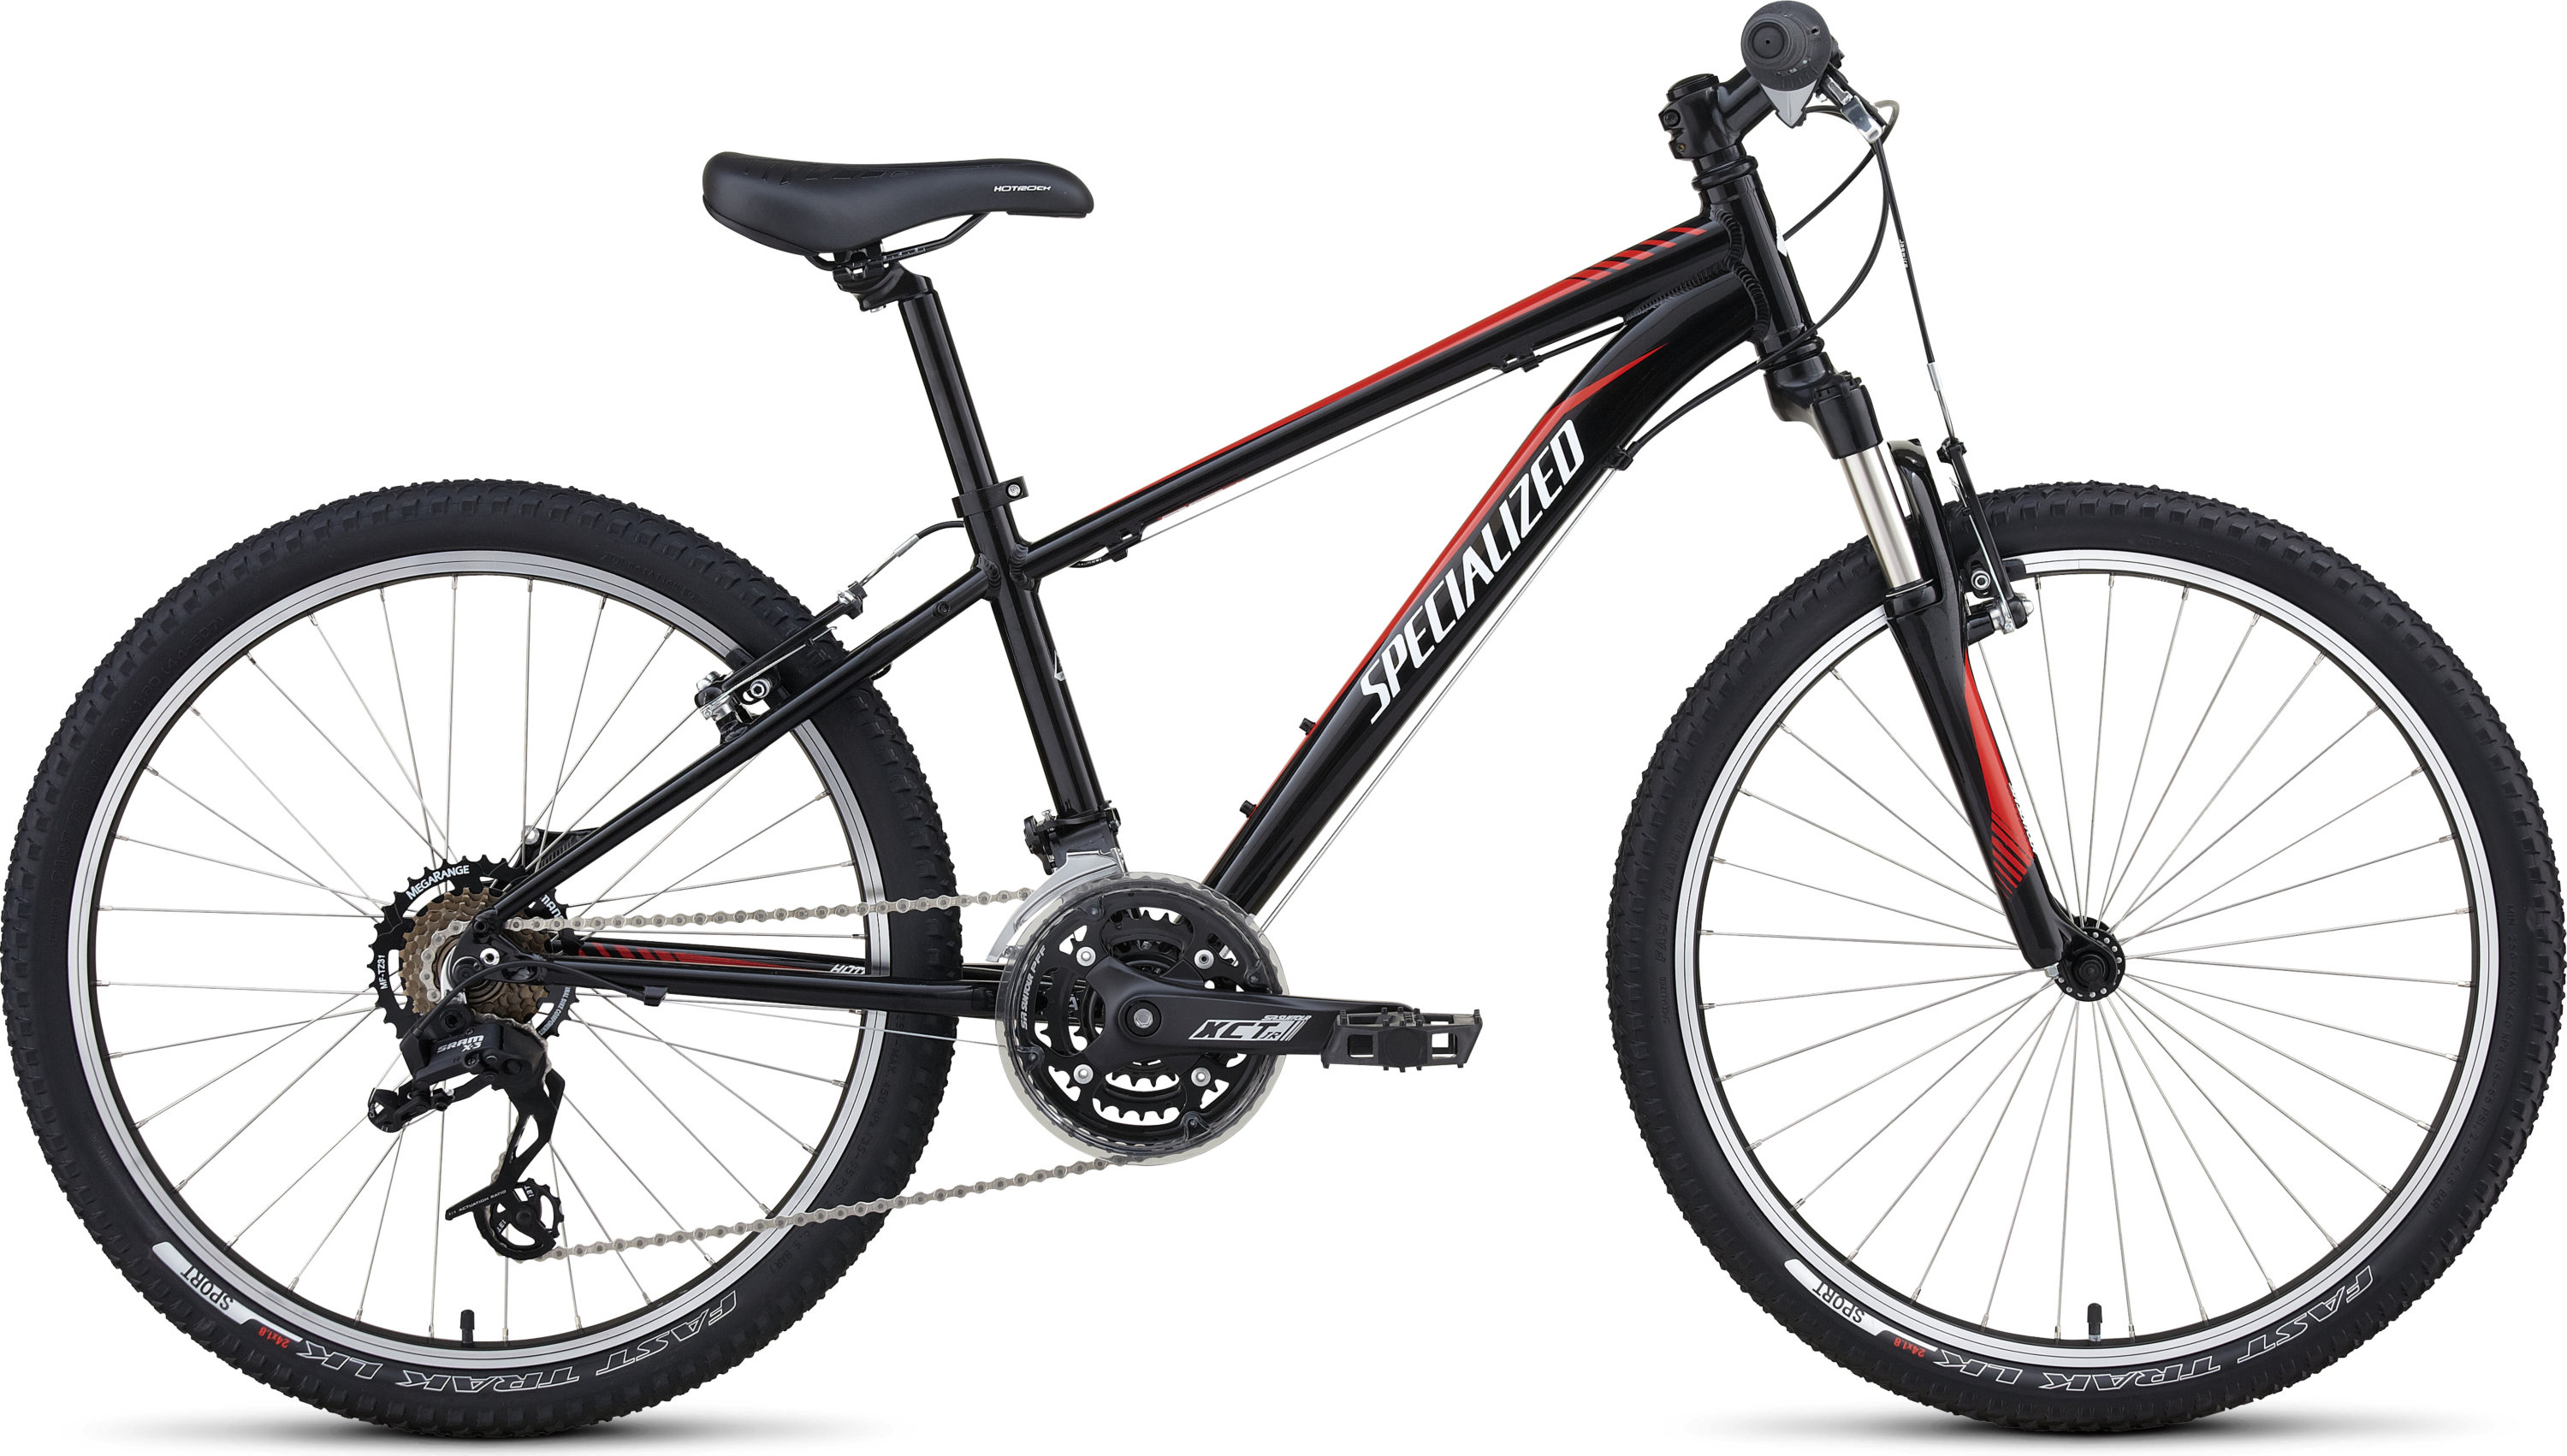 Specialized HOTROCK 24 XC BOYS Black/Red/White 11 - Bike Zone